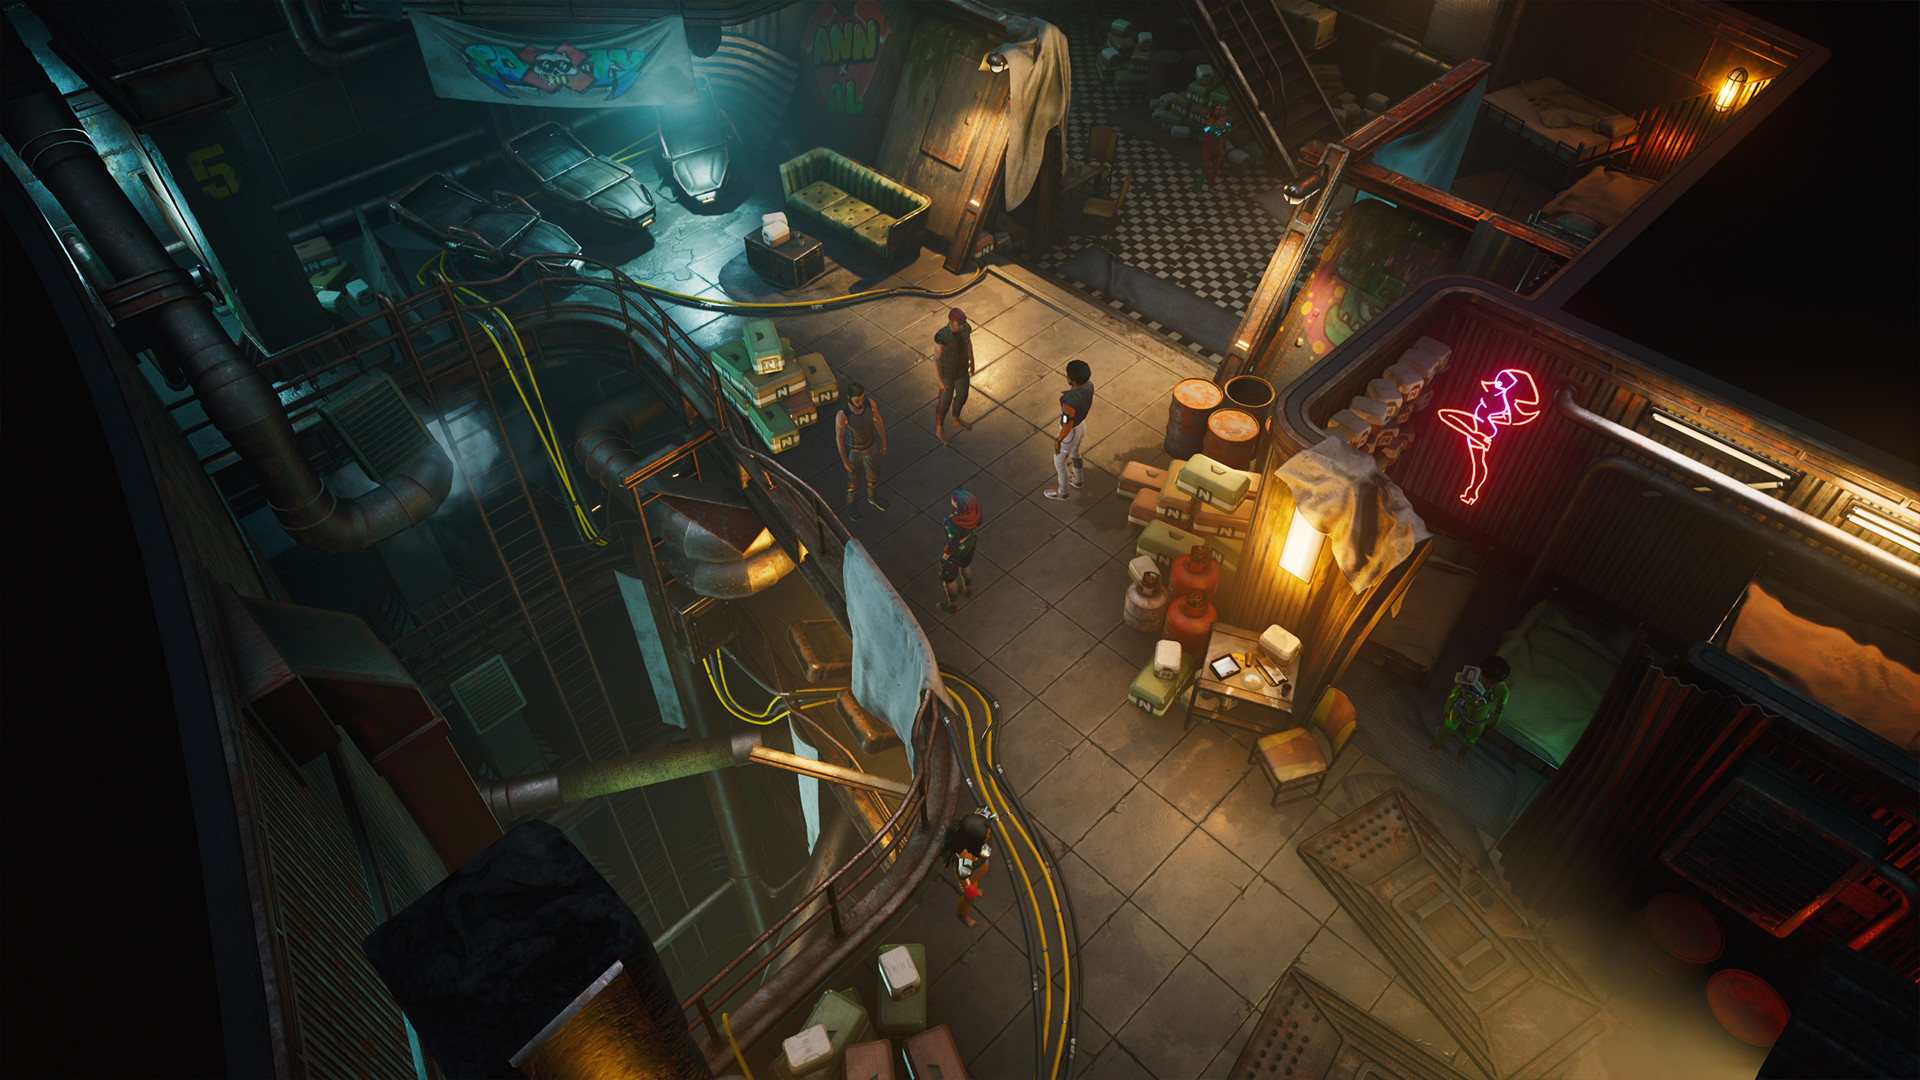 An overview of the seedy underworld in Gamedec.